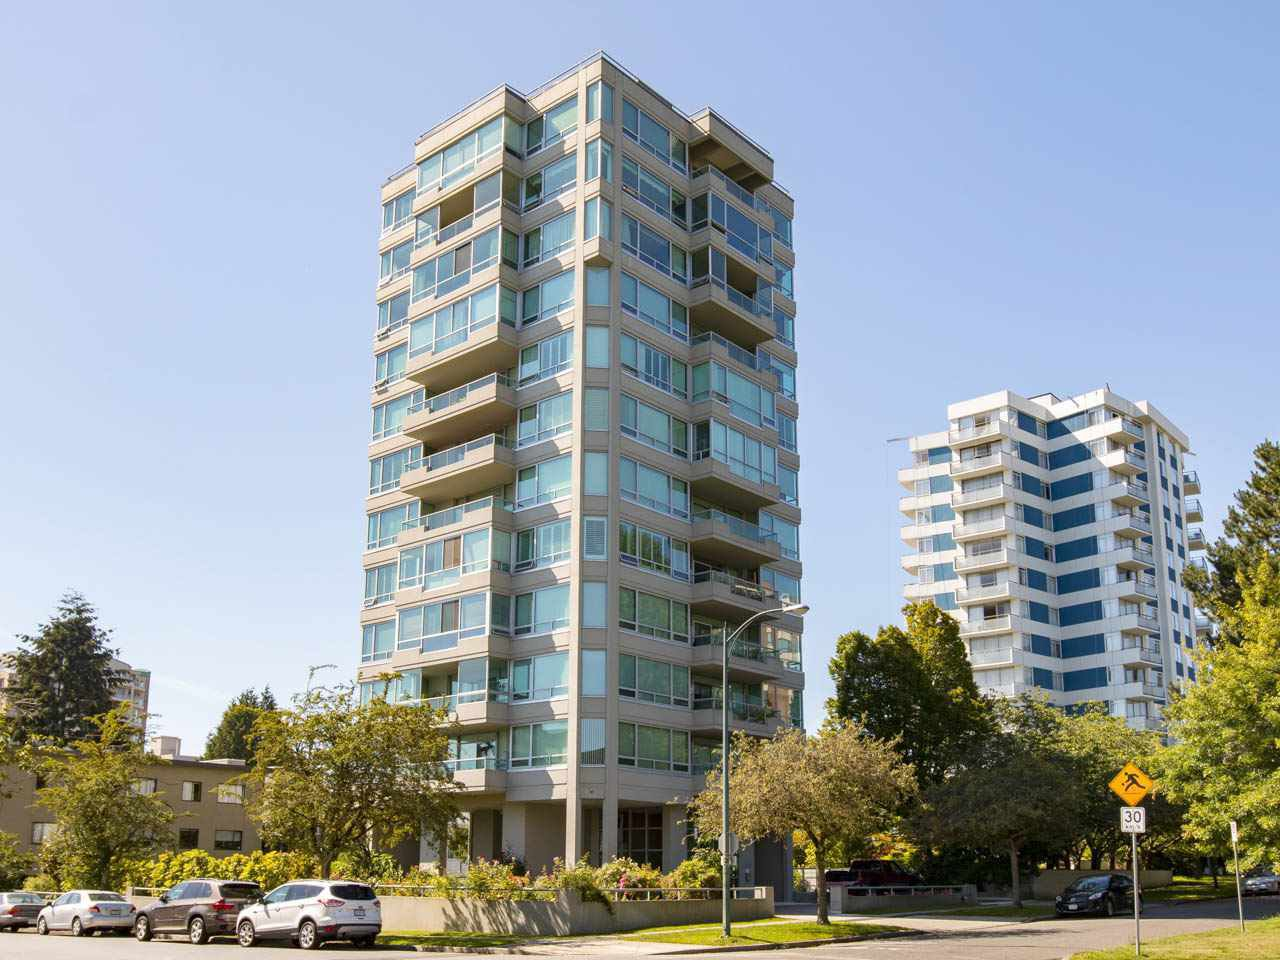 "Photo 1: Photos: 5 5885 YEW Street in Vancouver: Kerrisdale Condo for sale in ""Kerrisdale"" (Vancouver West)  : MLS®# R2243002"